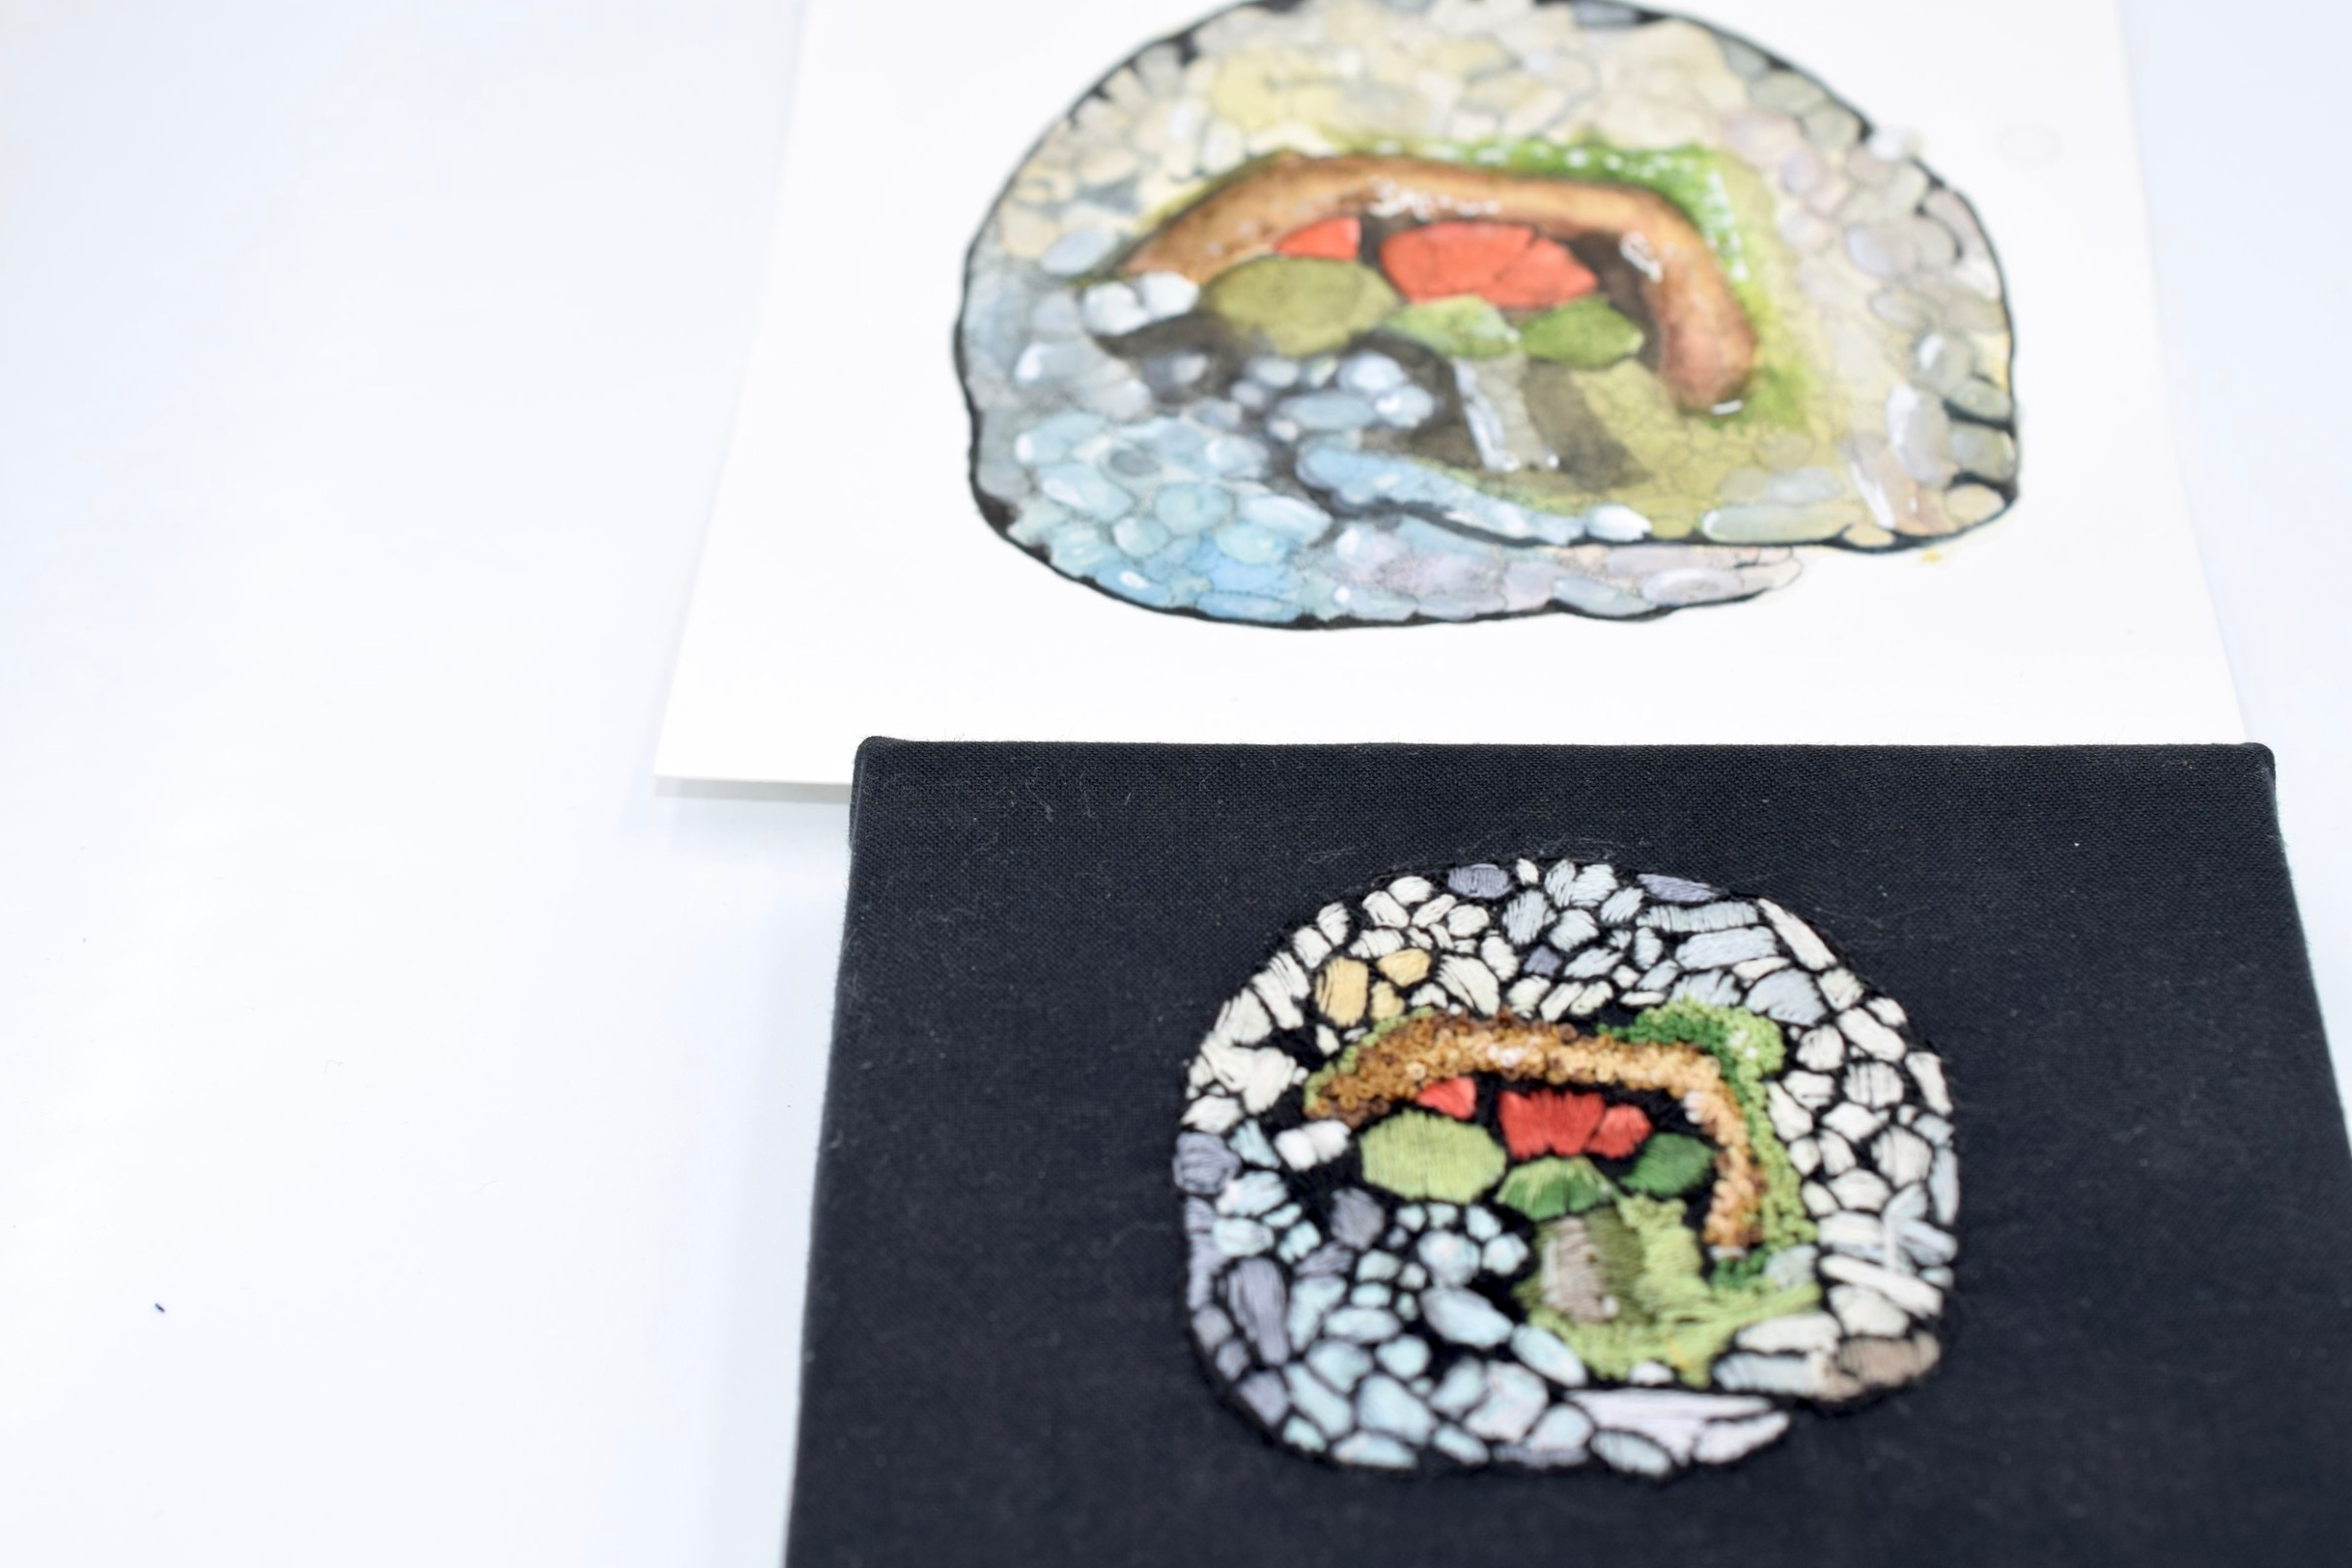 EMBROIDERED PAINTING: I used various stitches to recreate my watercolor painting into an embroidered painting.